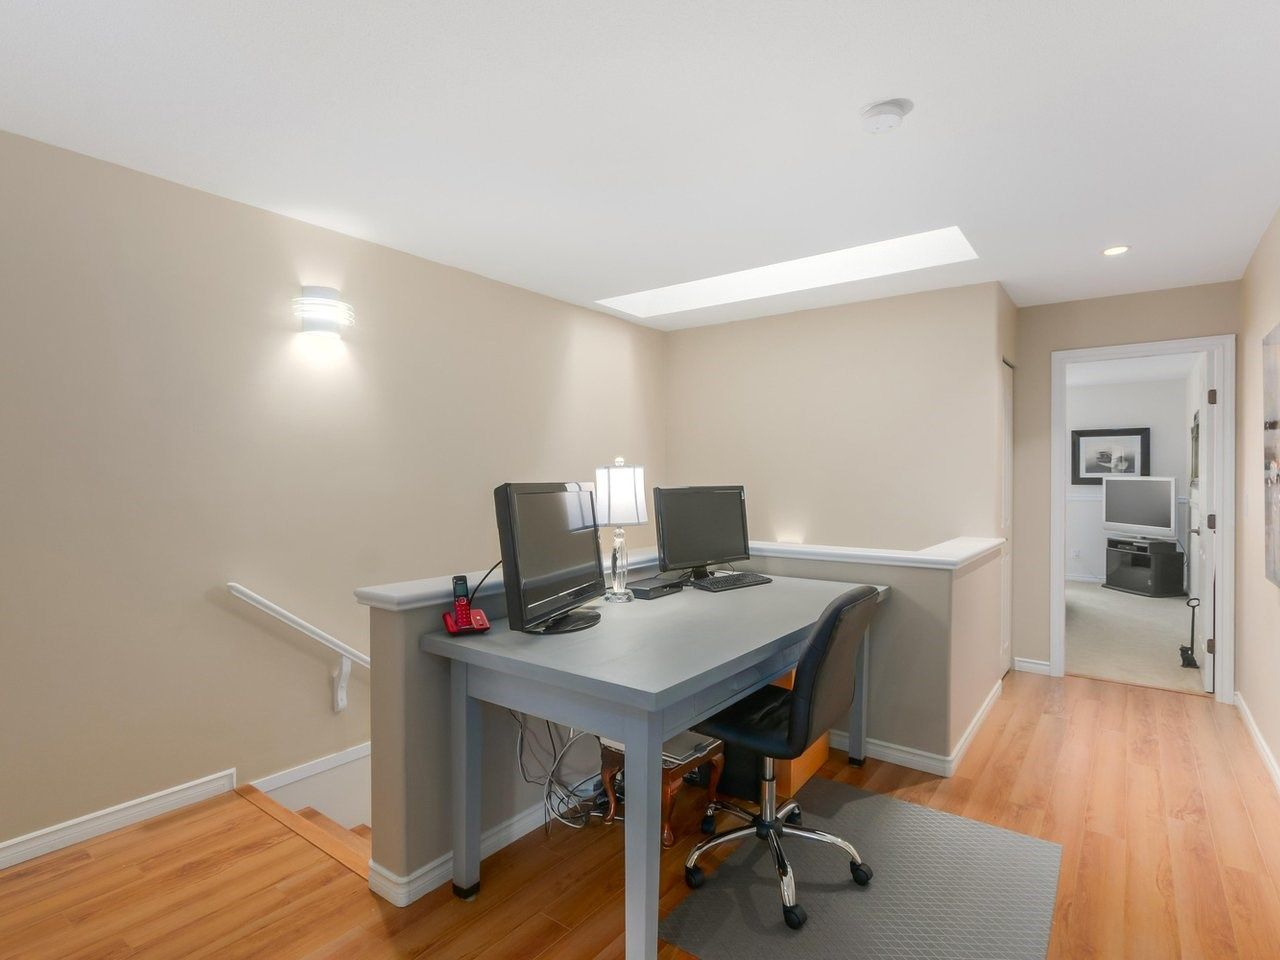 """Photo 18: Photos: 21 998 RIVERSIDE Drive in Port Coquitlam: Riverwood Townhouse for sale in """"PARKSIDE PLACE"""" : MLS®# R2371728"""